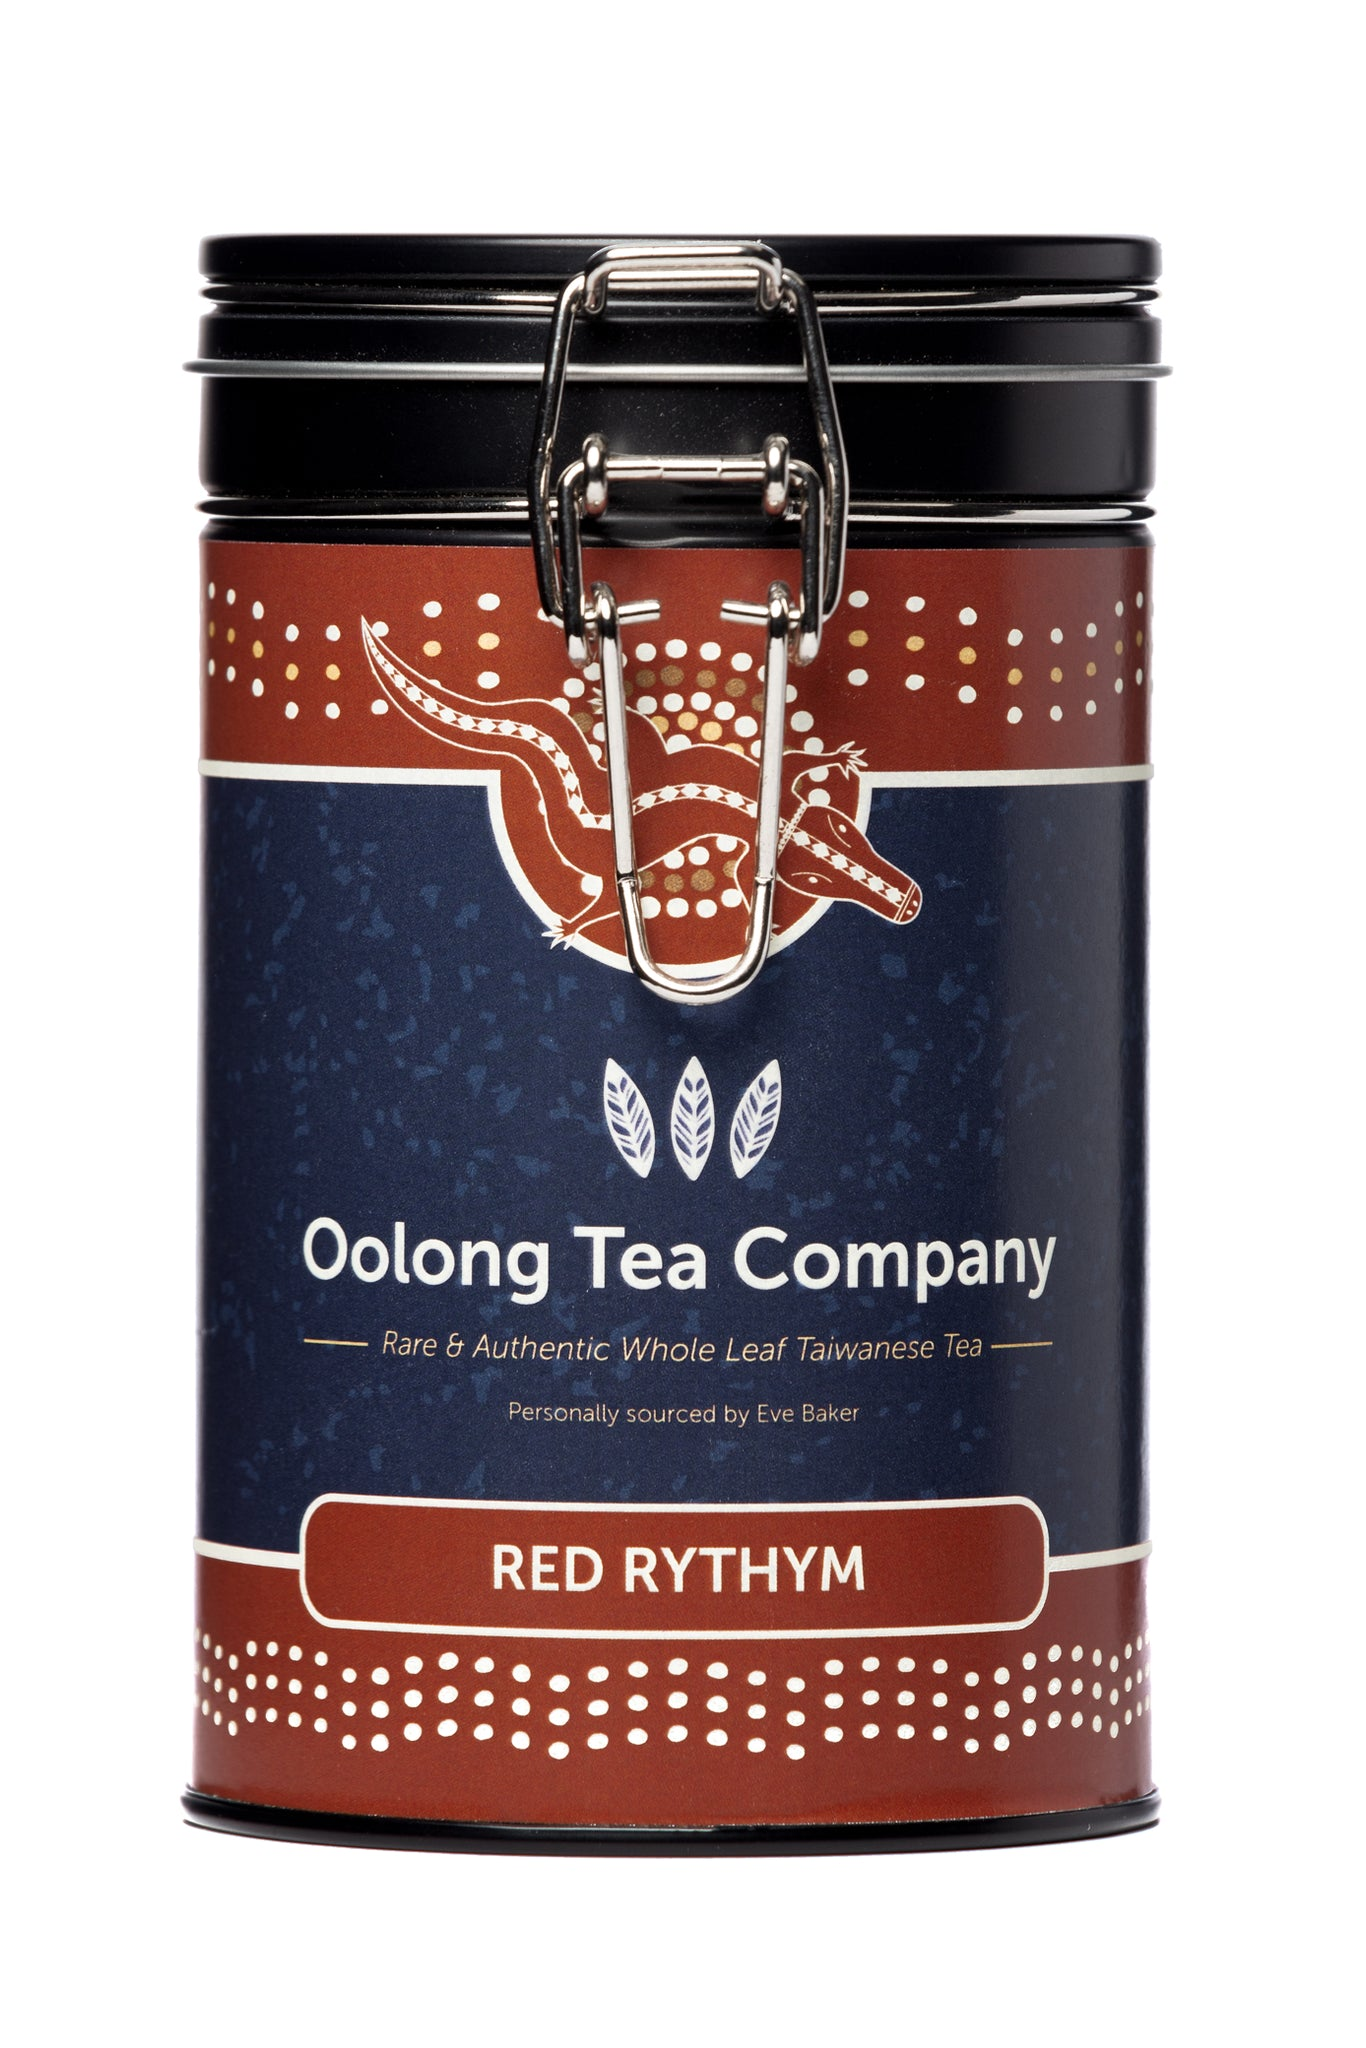 75 grams of Red Rhythm also known as number 21 loose leaf high mountain Oolong tea from the Nantou county of Taiwan in a round black tea caddy with an easy opening silver clip